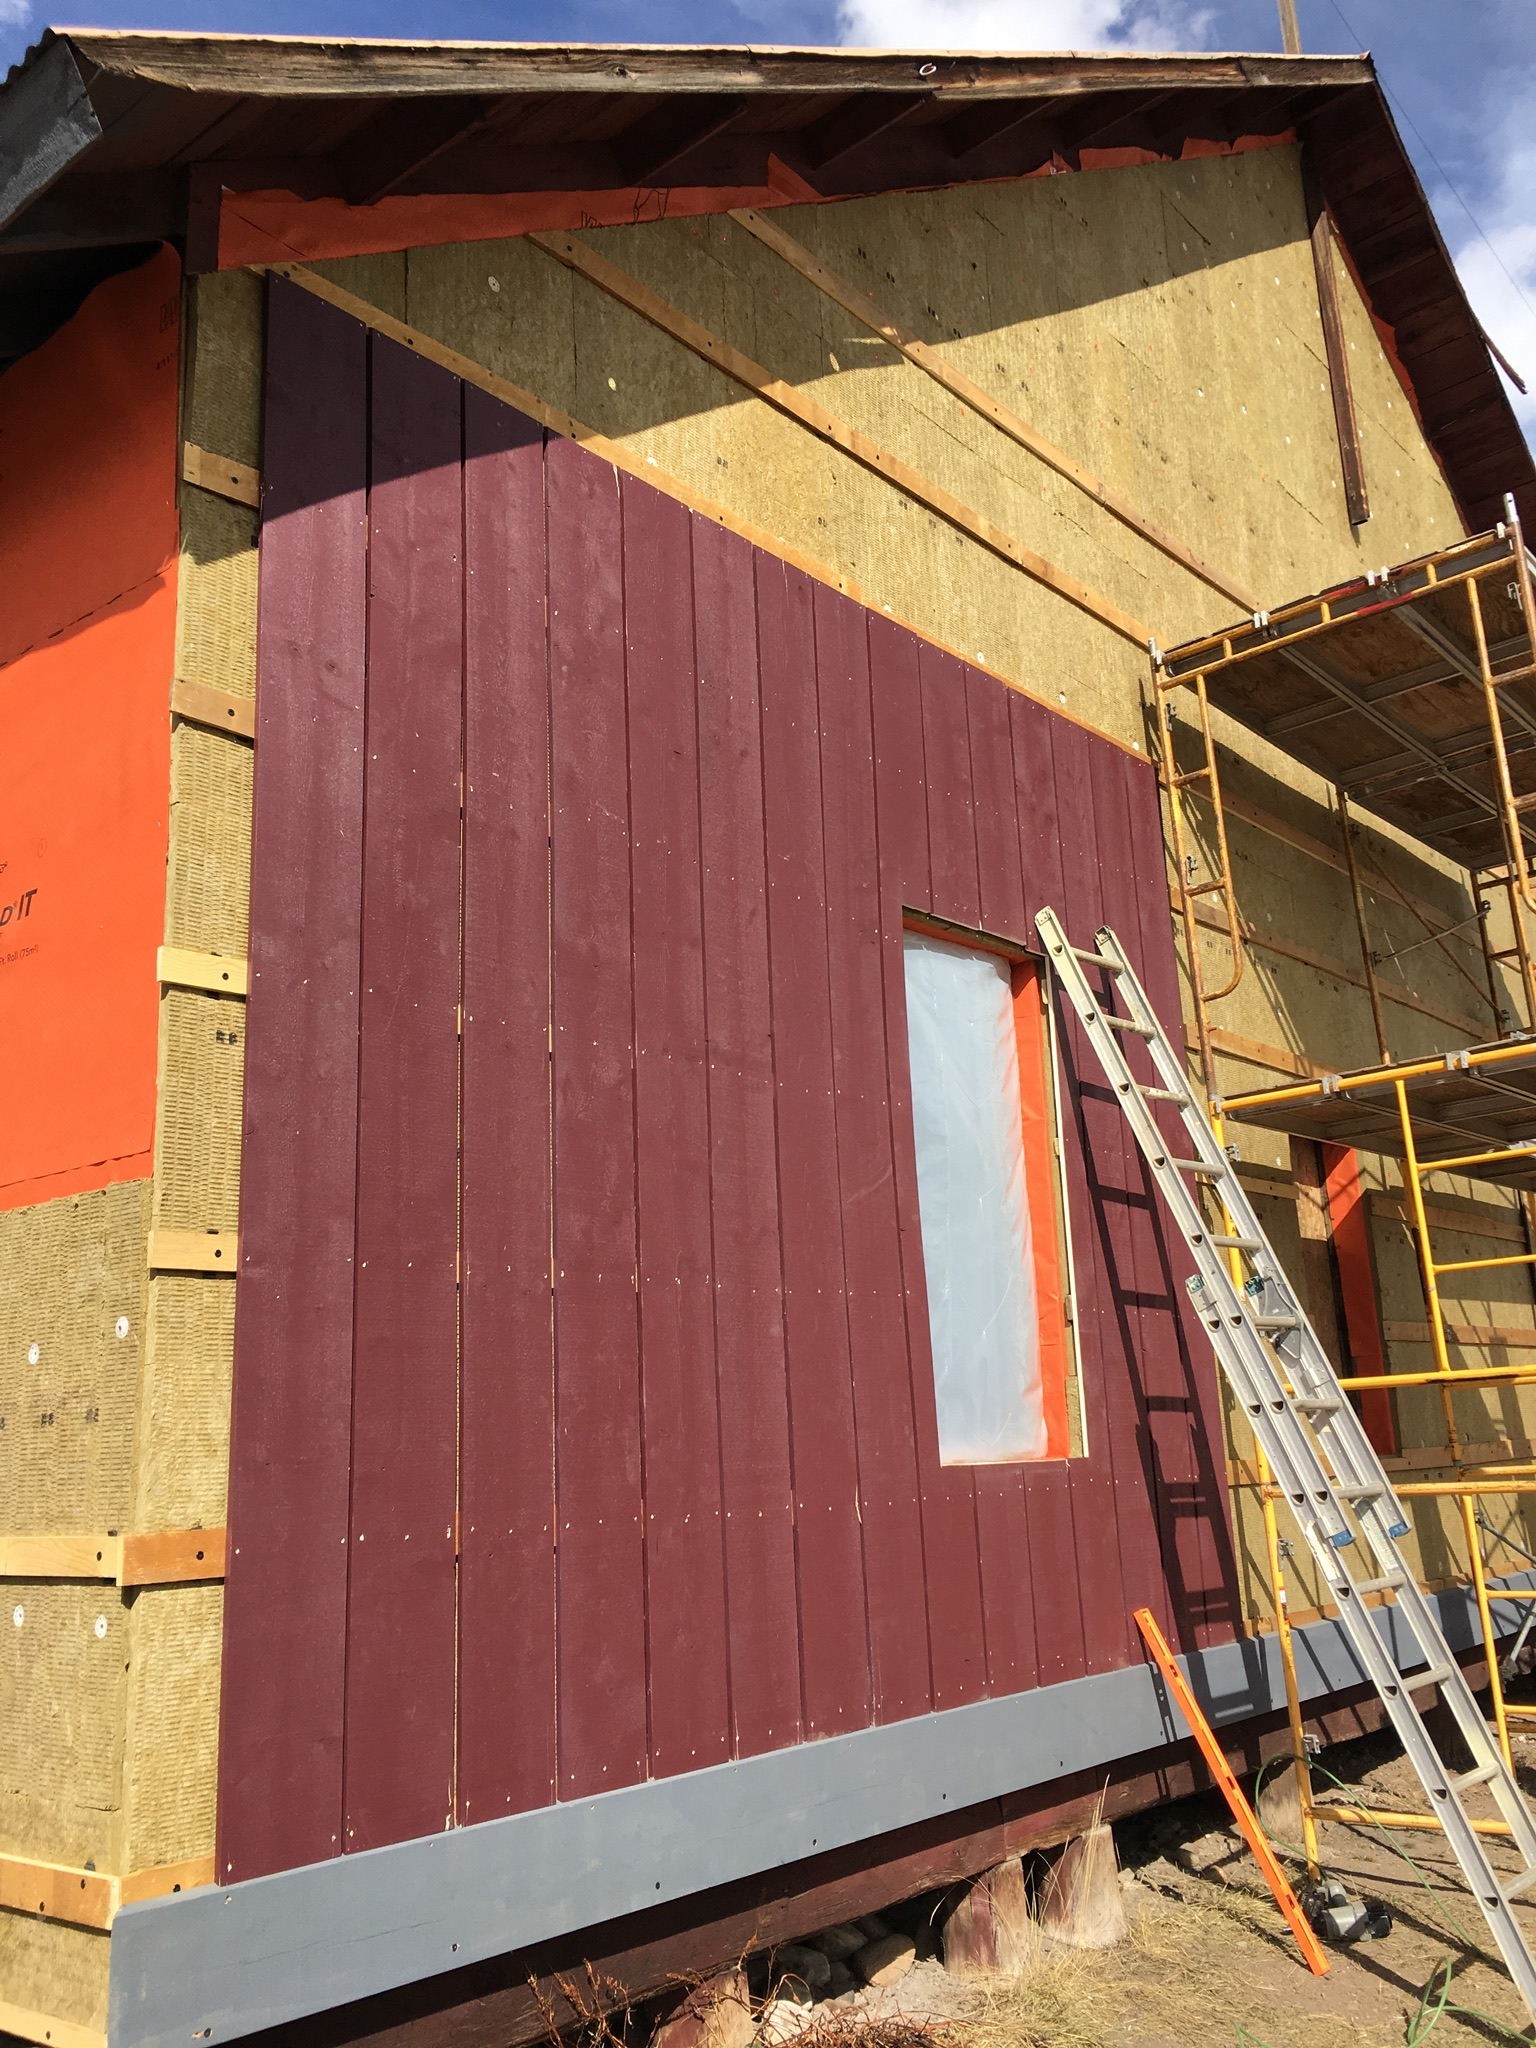 Using the rough edge of new siding brings the texture and feel of the original siding while adding material integrity.